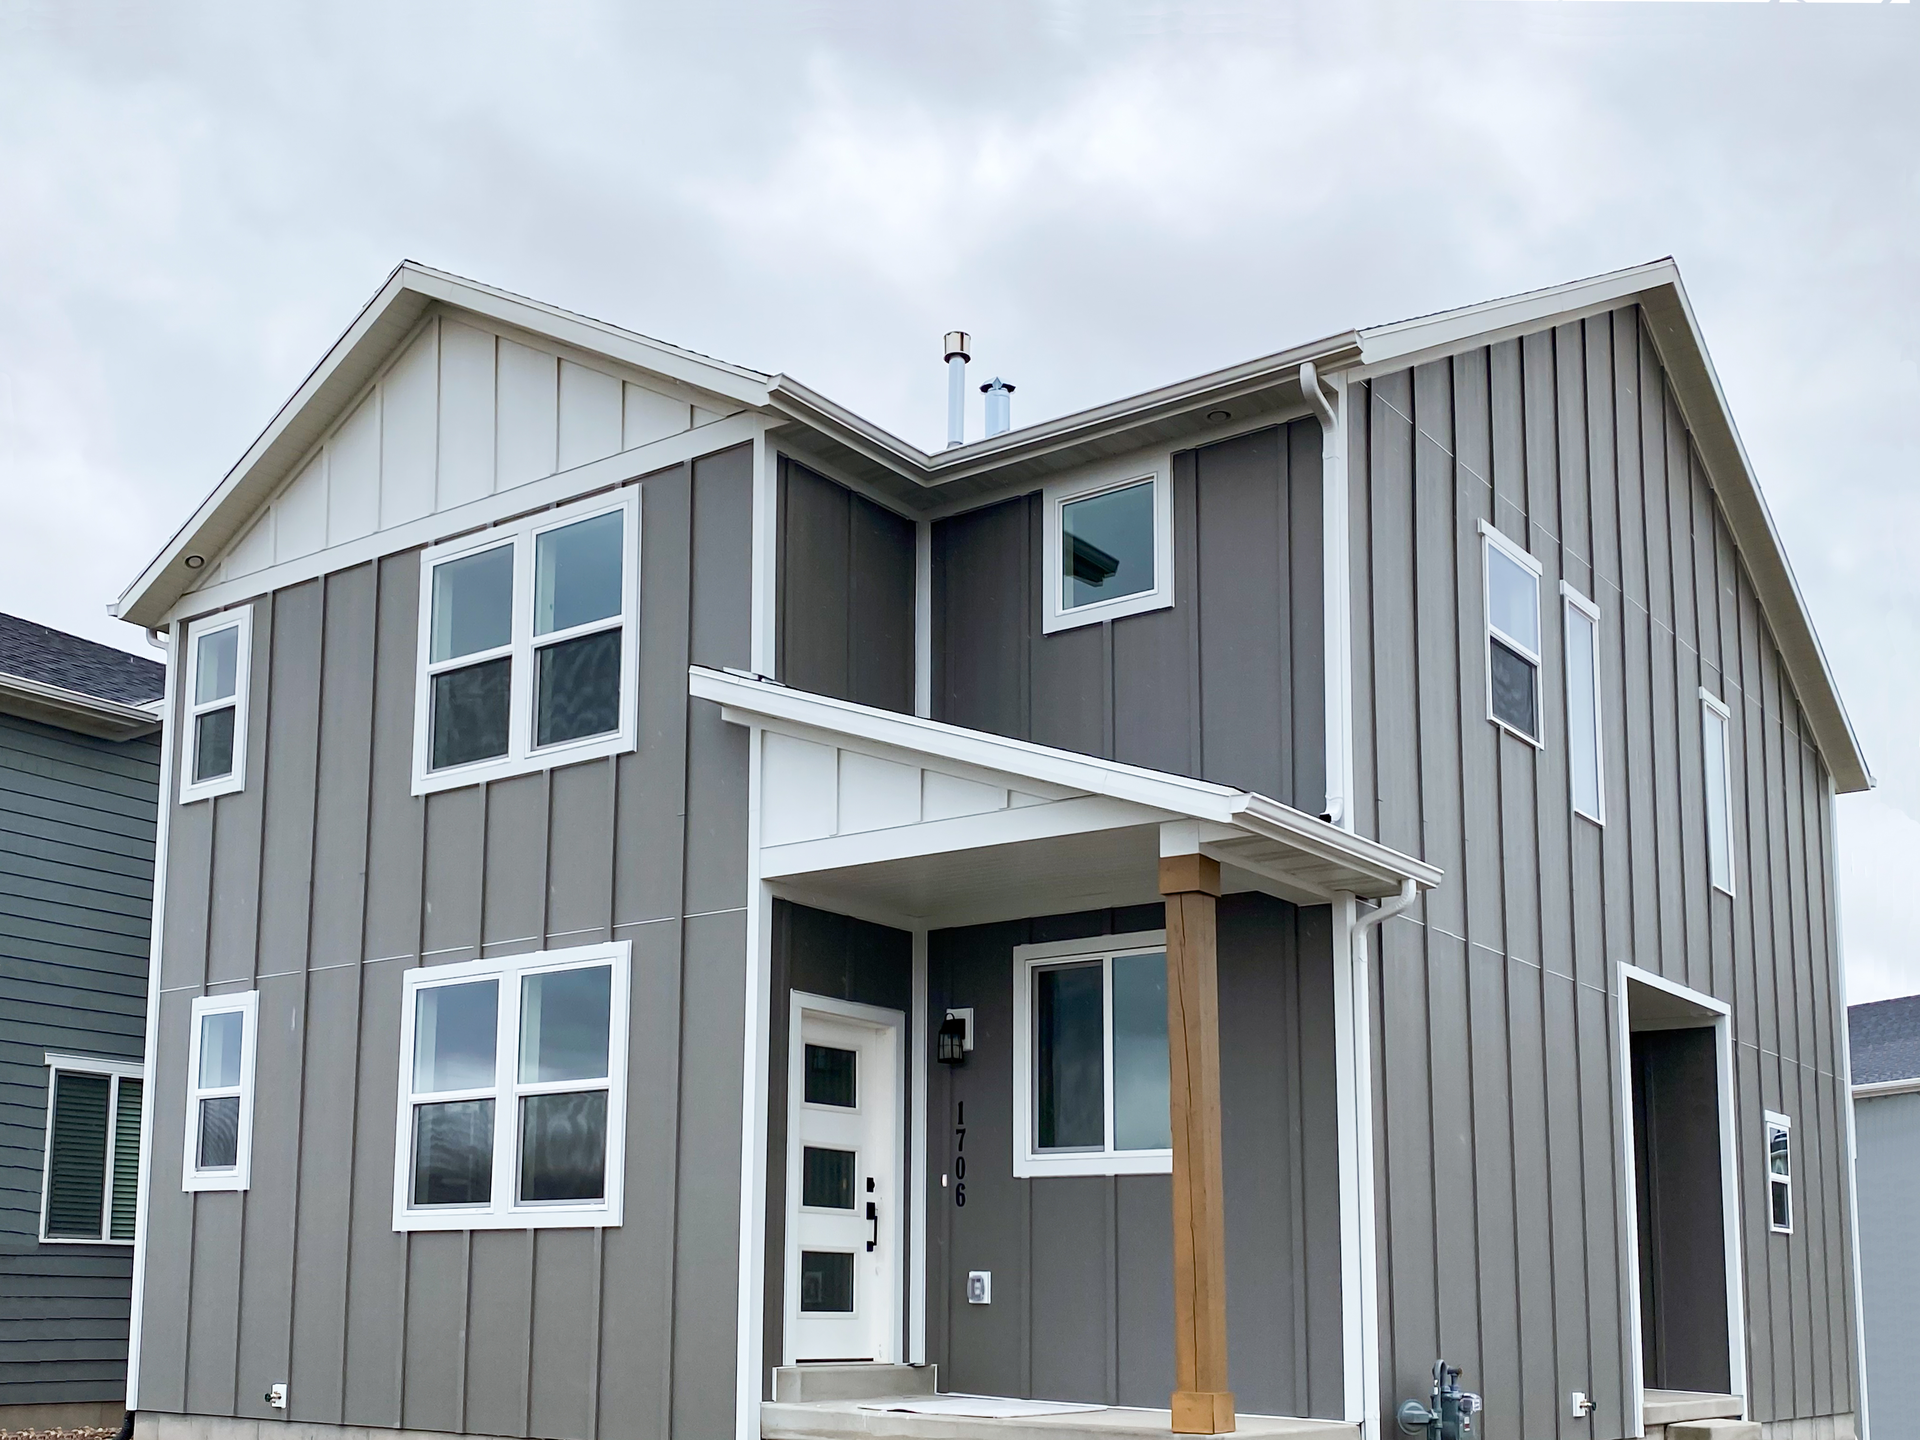 New Home for sale 1732 N 1260 E #139, Payson, UT